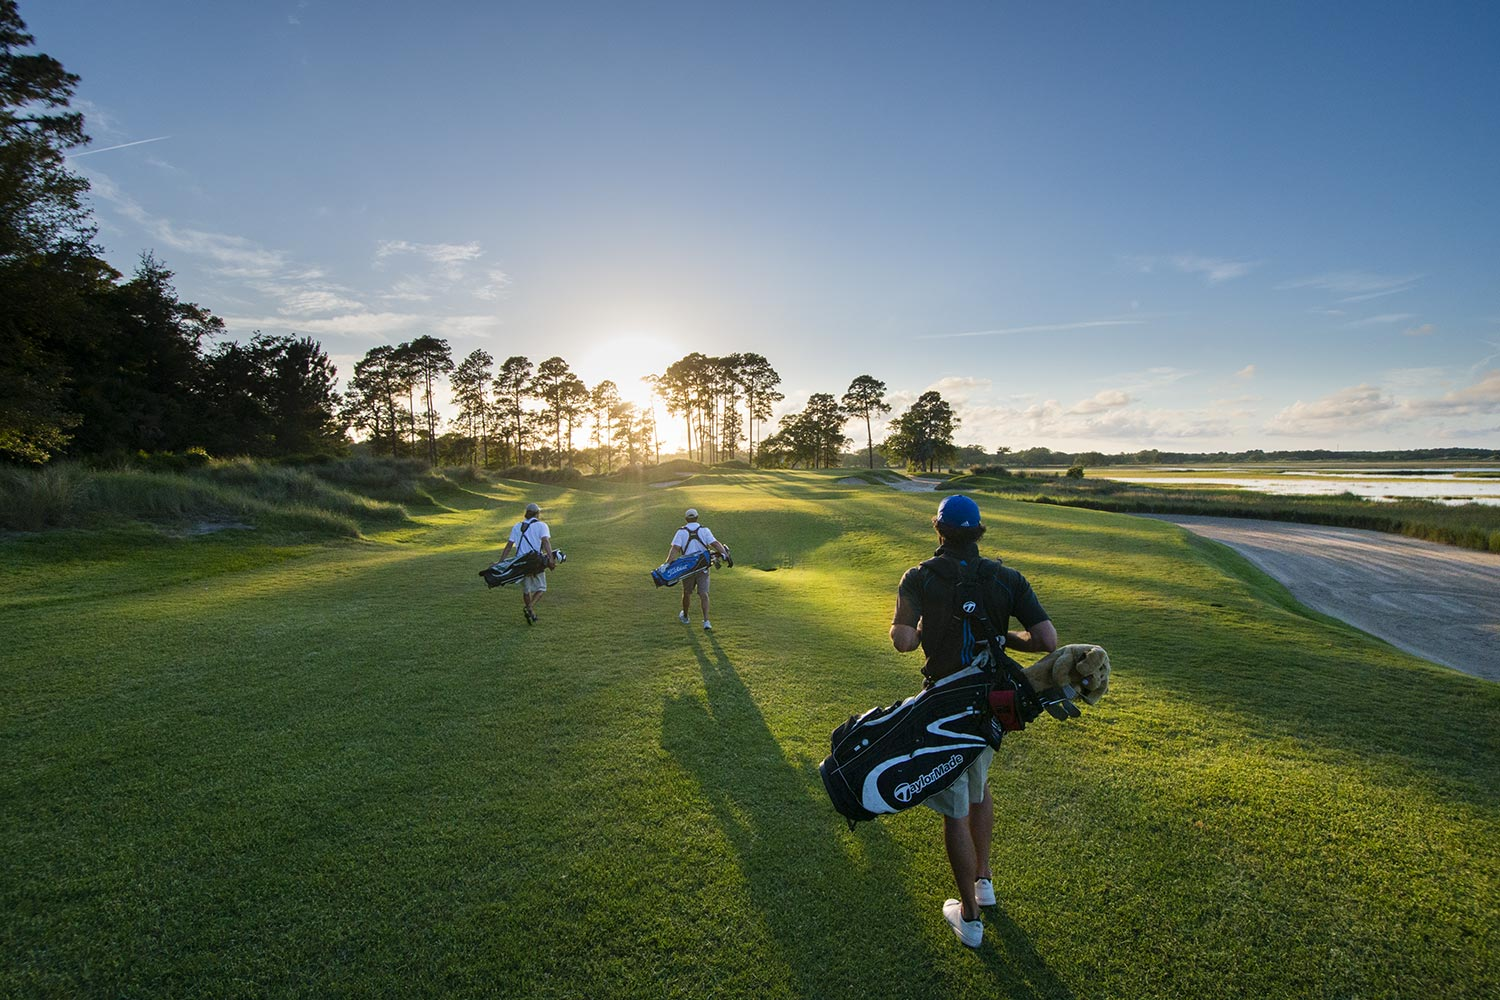 Golfing on the Cassique course at sunset